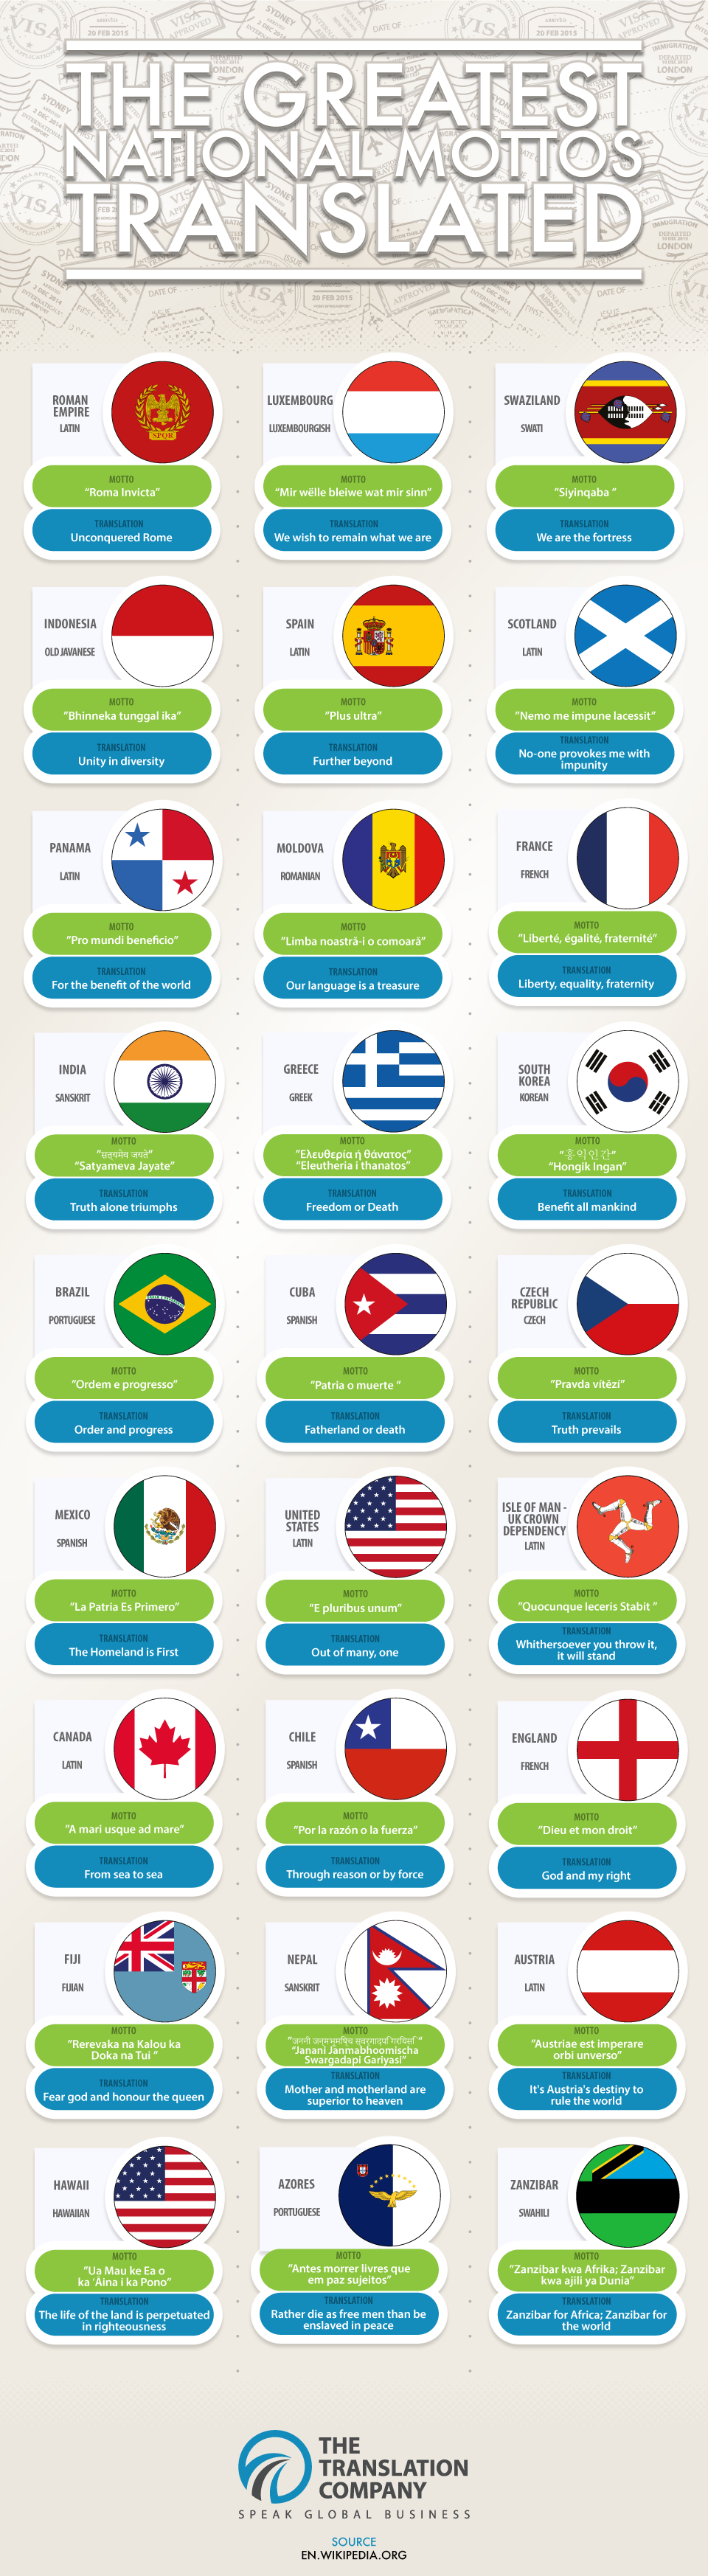 Translations Of The Greatest National Mottos - Infographic